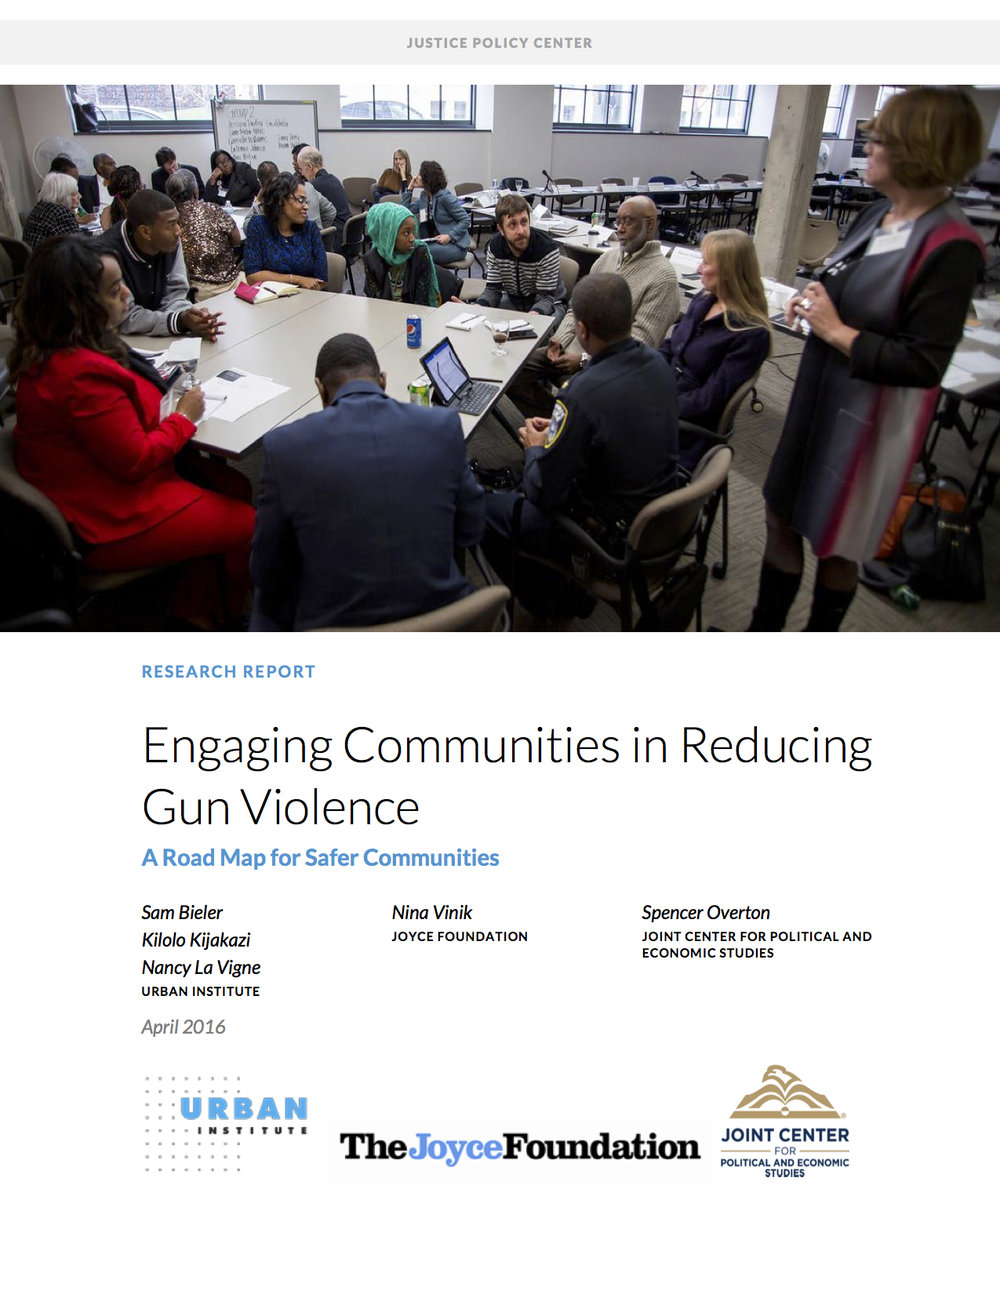 Engaging Communities in Reducing Gun Violence.jpeg